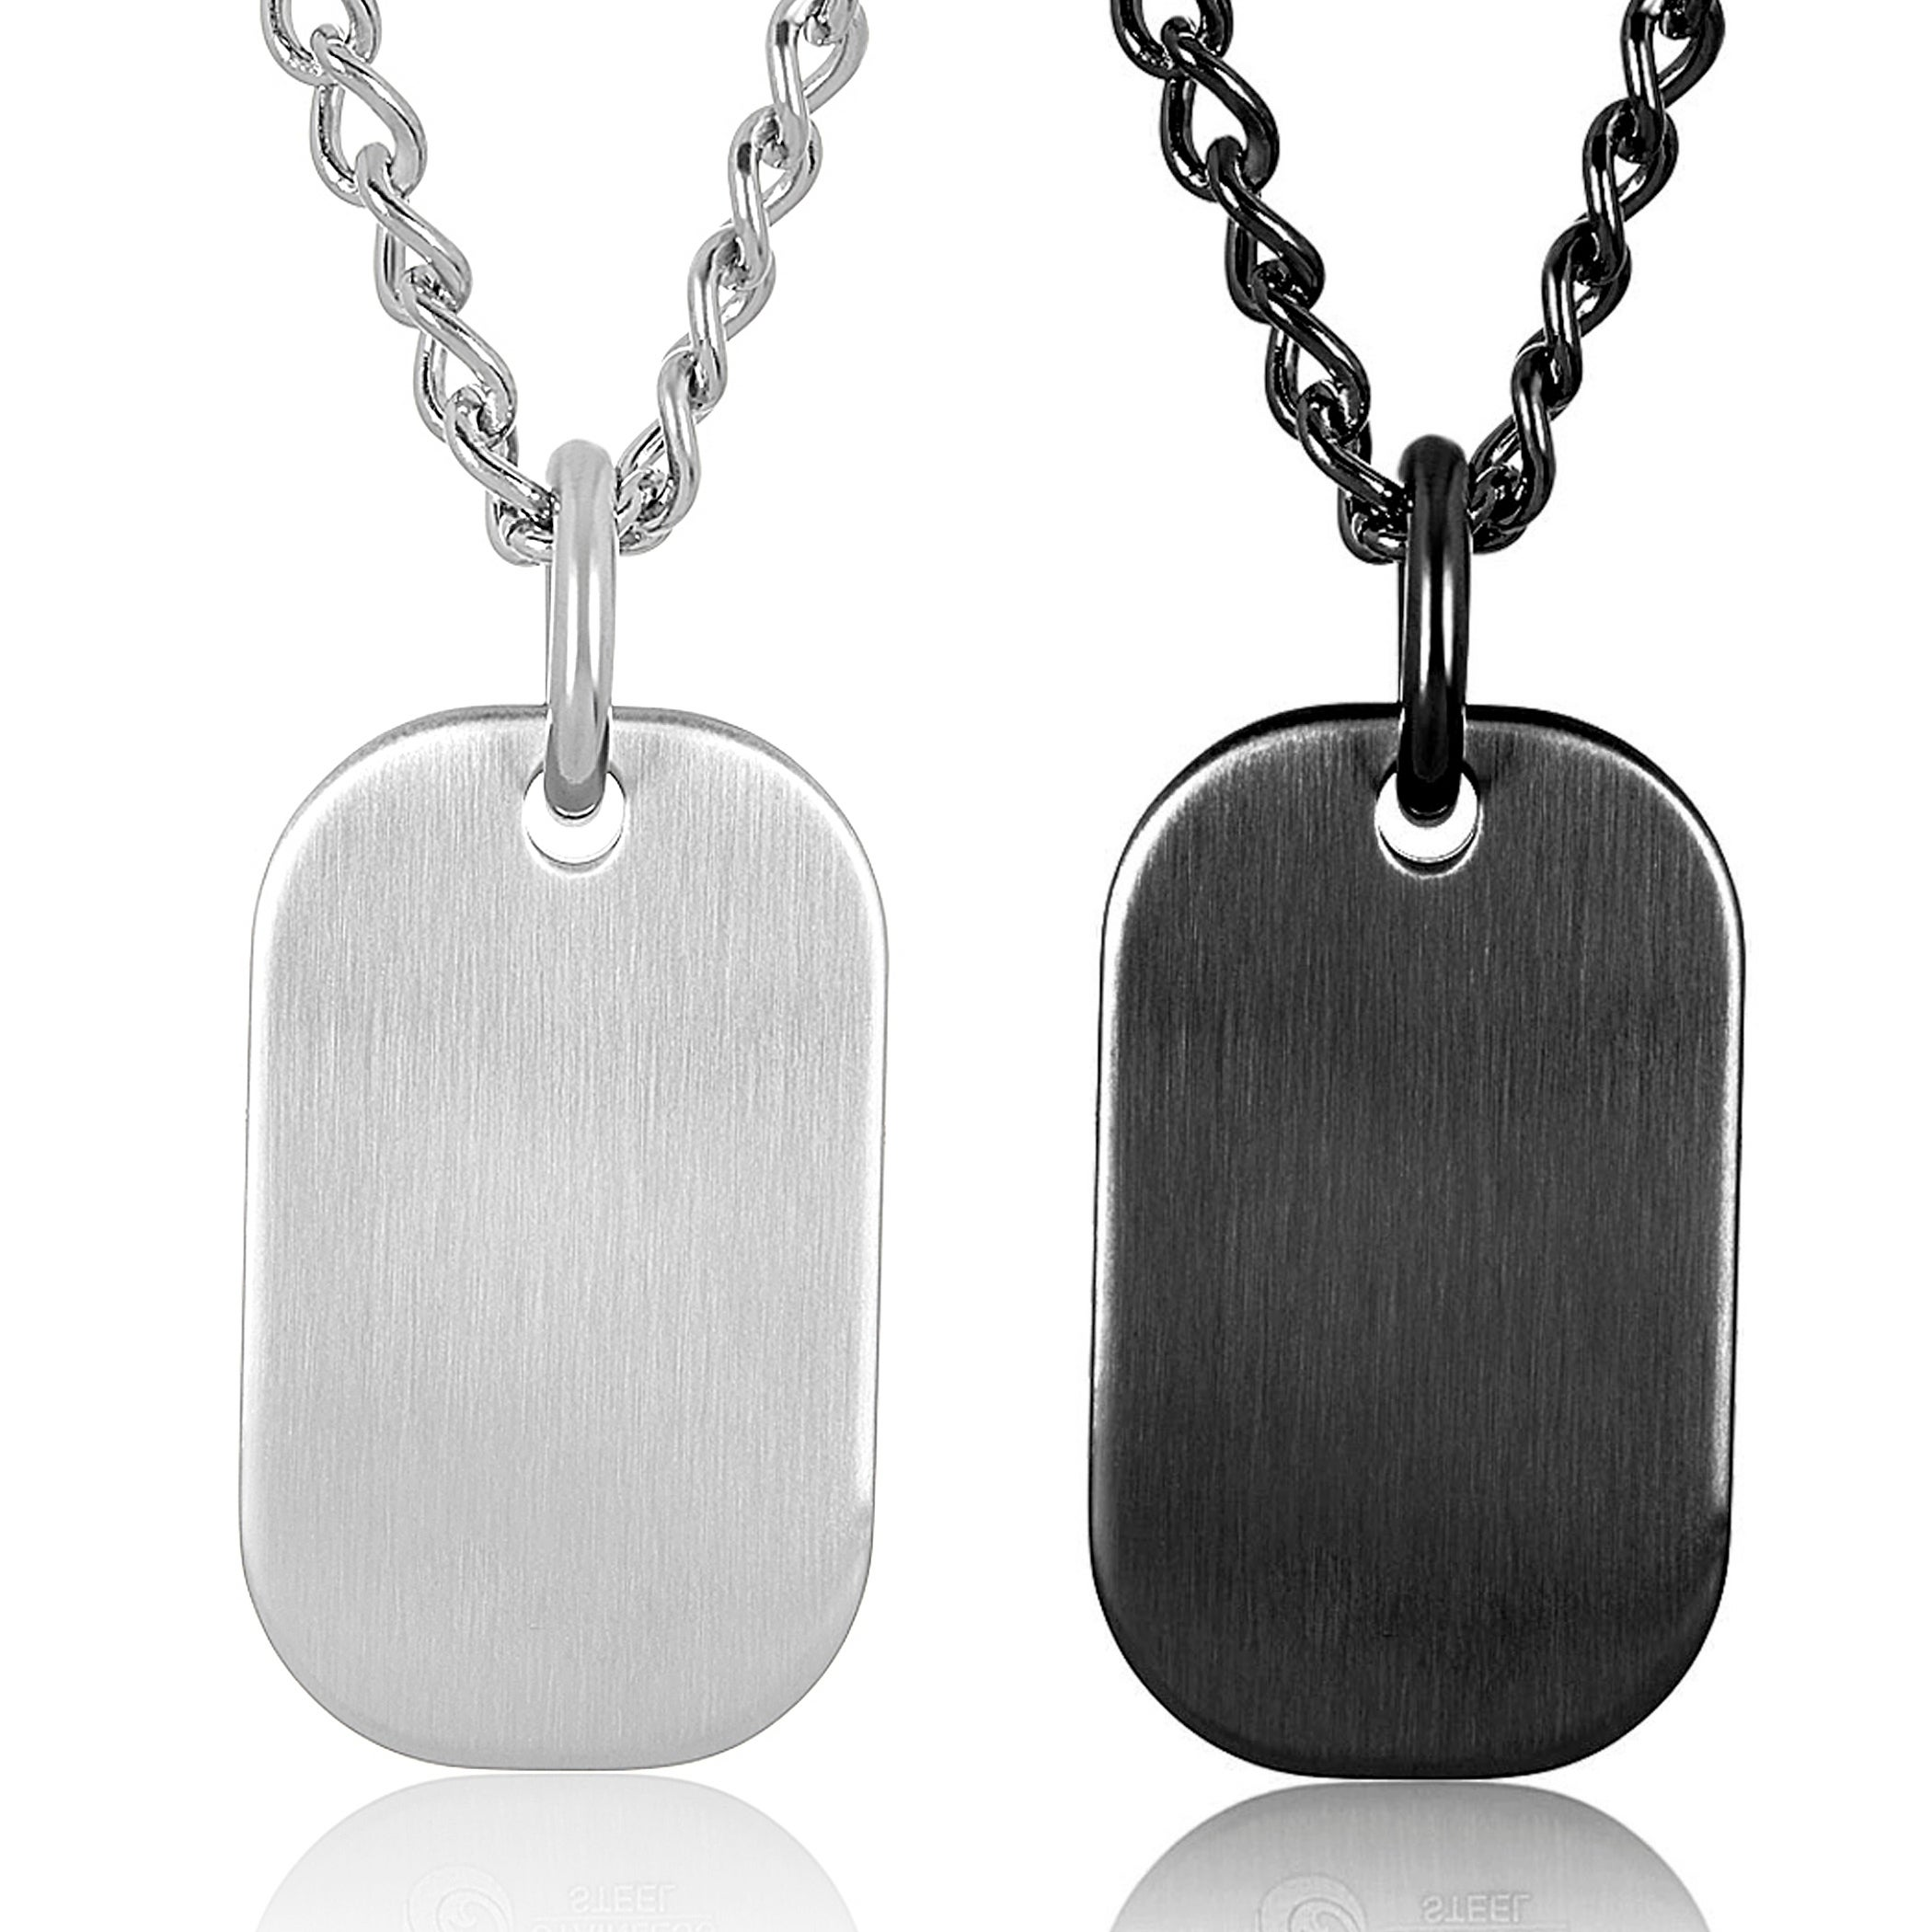 necklaces silver fingerprint on range chain french by a morgan necklace tag inked dog browse